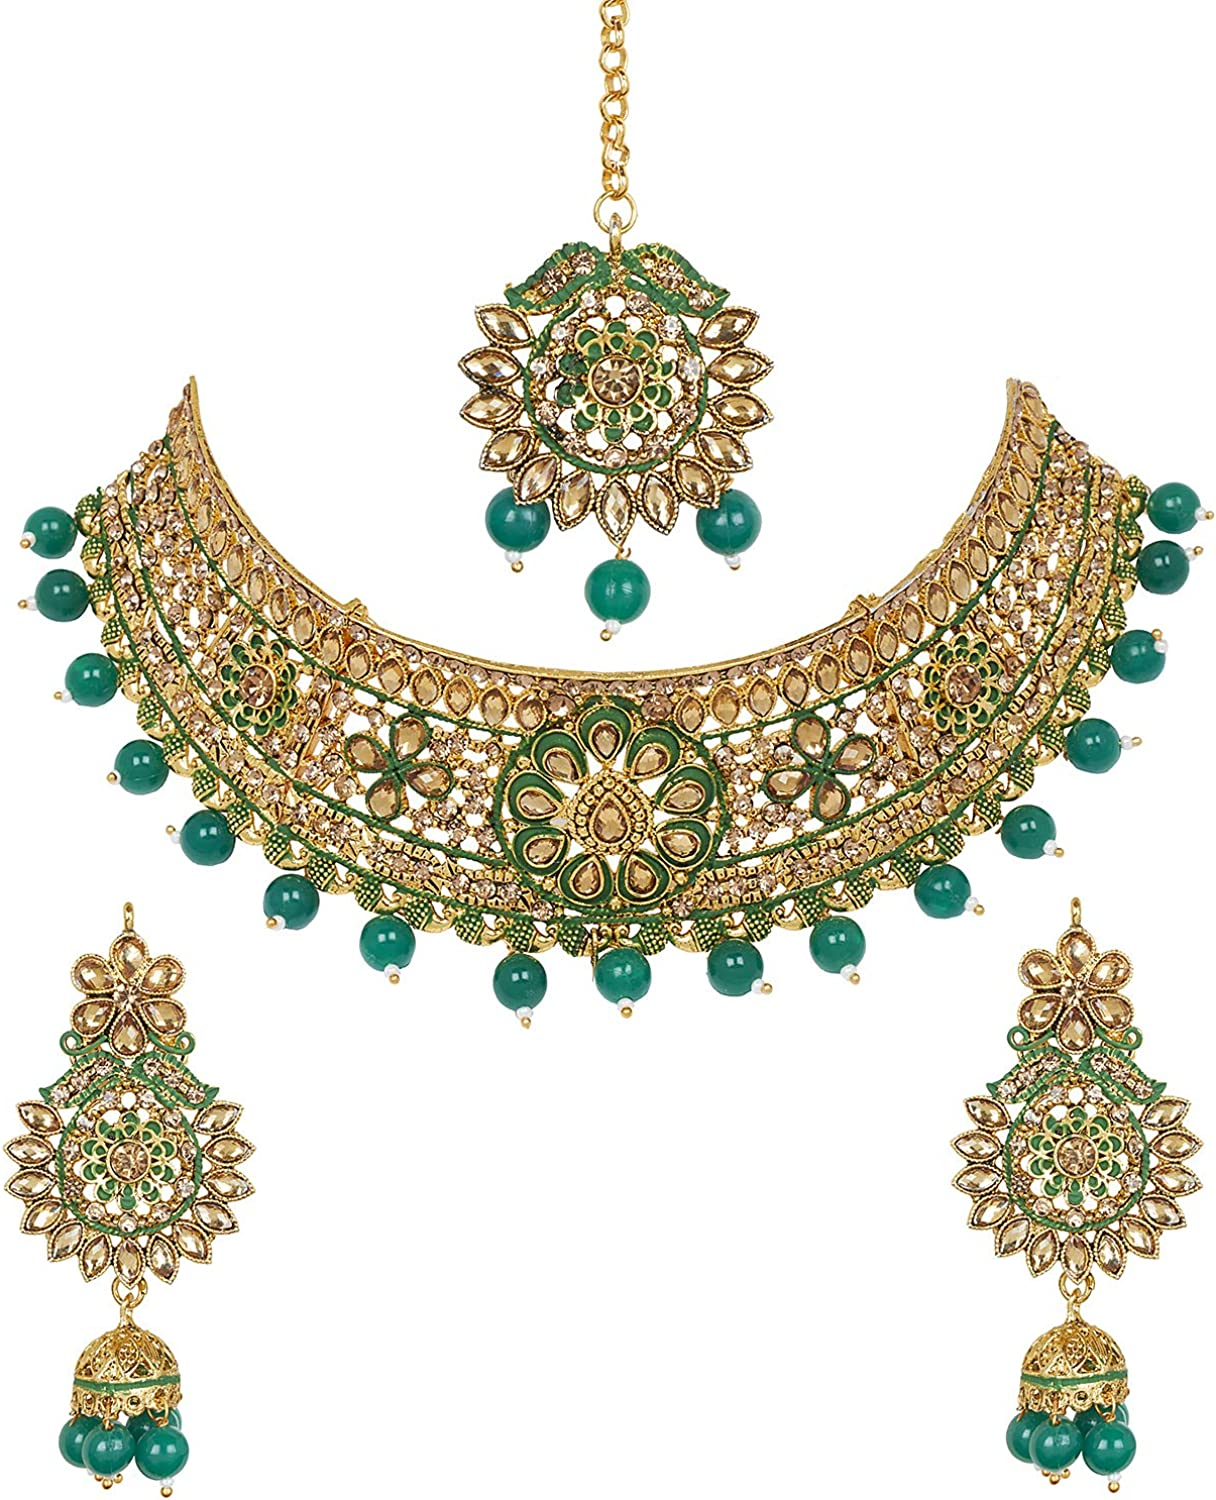 bodha Traditional Indian 18K Antique Gold Plated One Gram Bridal Jewellery Combo Necklace Set with Tikka and Earrings for Women (SJ_2882_G)